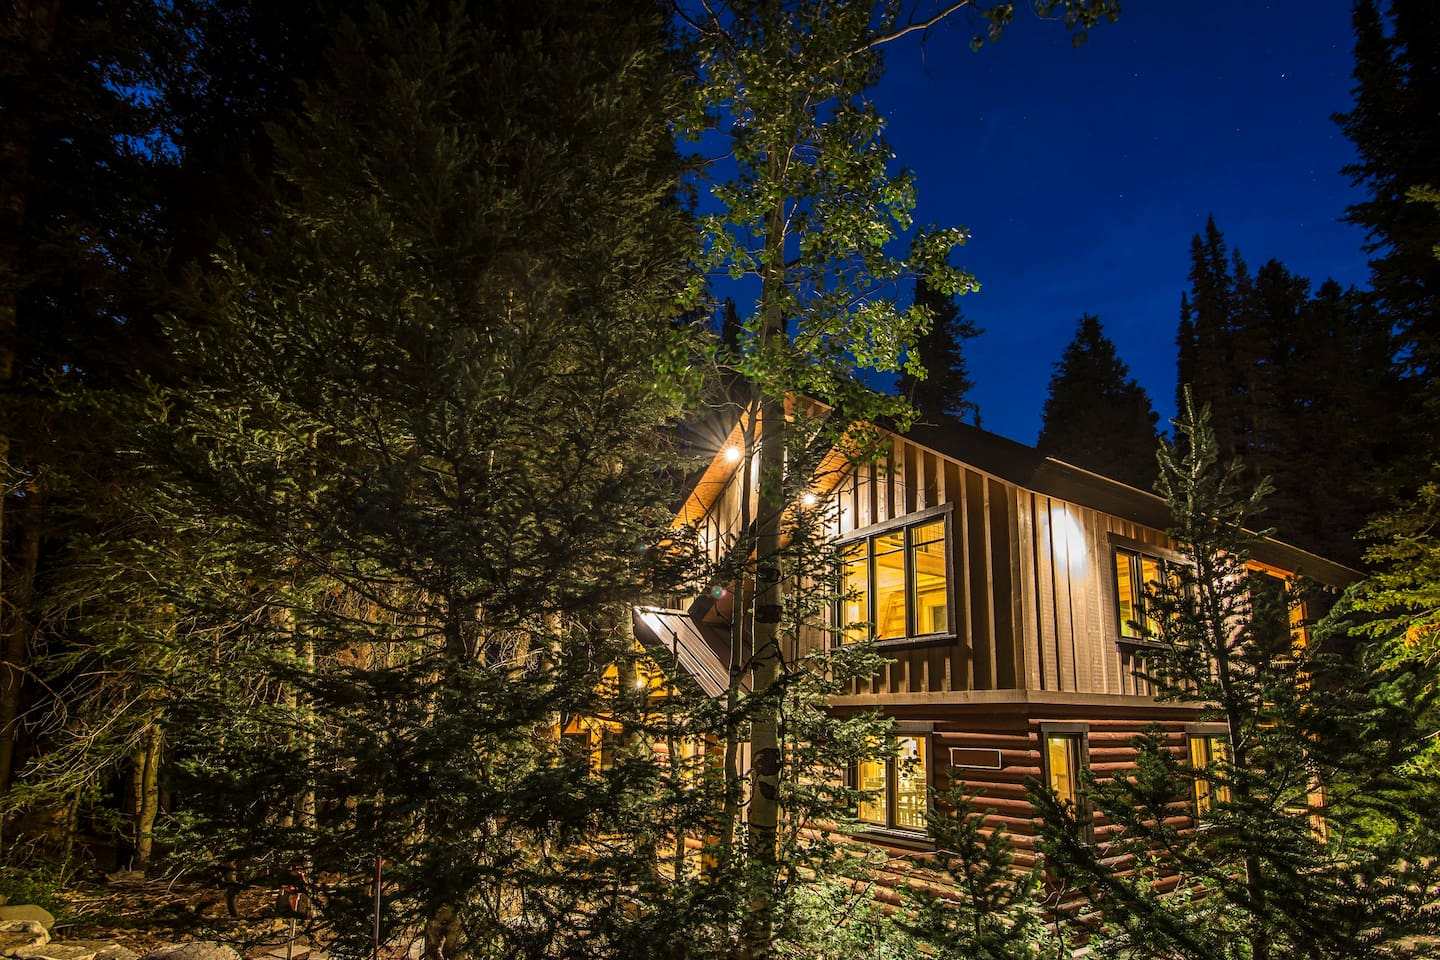 Front of the cabin at dusk